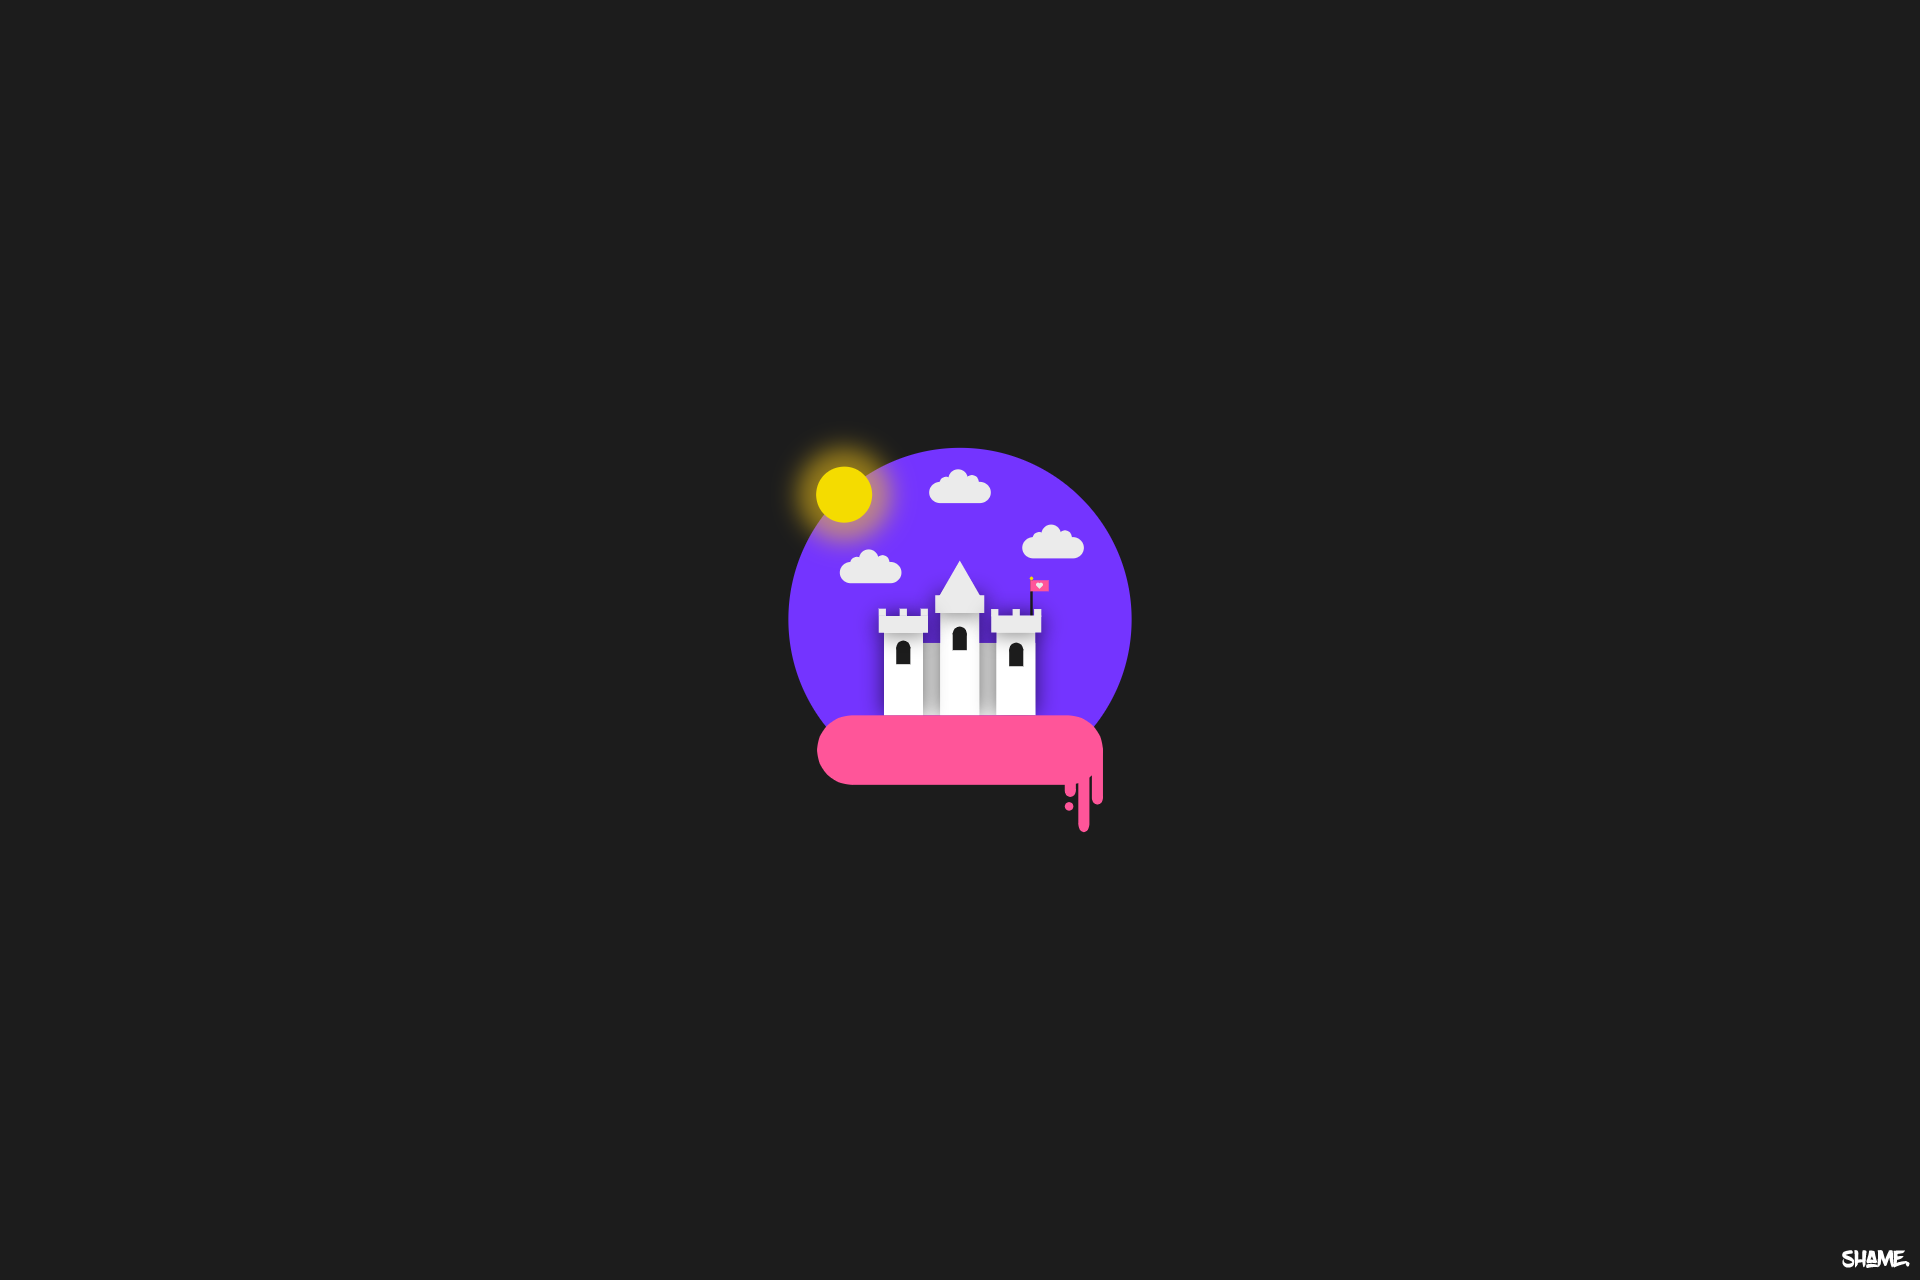 General 1920x1280 castle Flatdesign minimalism brightness